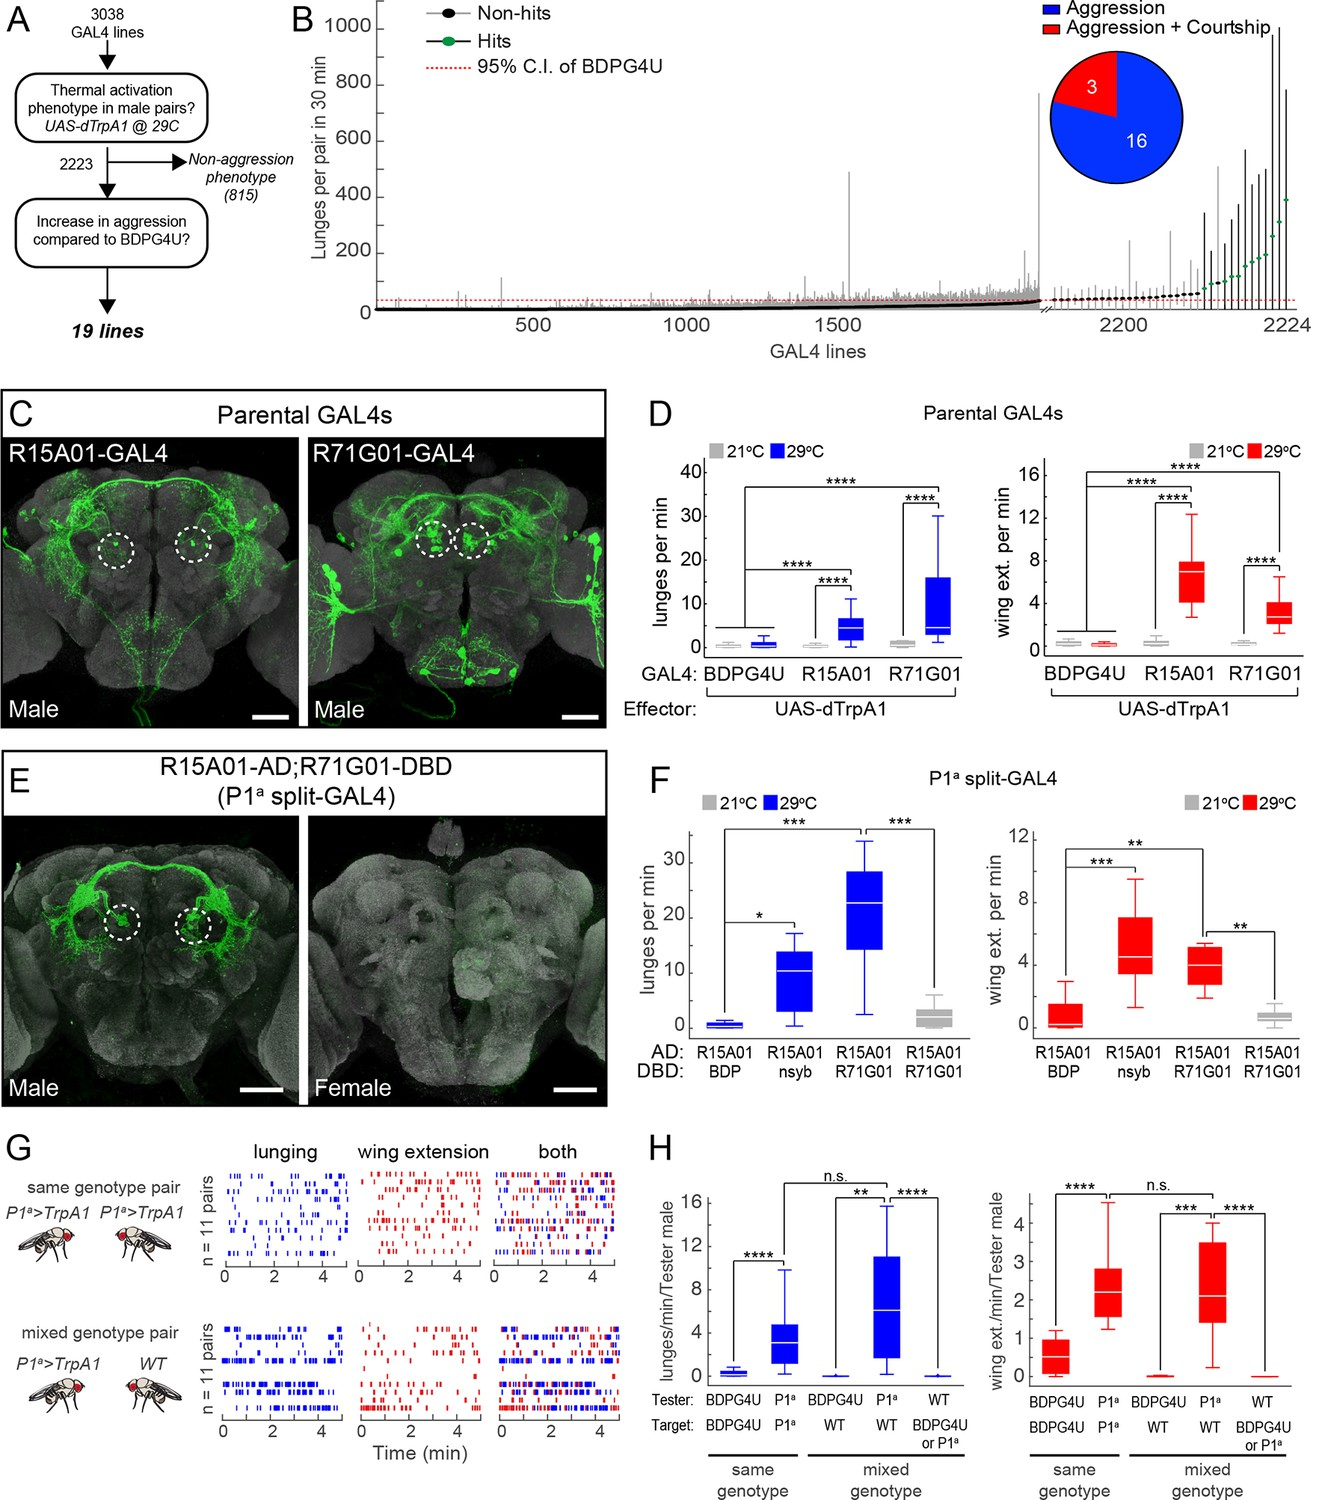 P1 Interneurons Promote A Persistent Internal State That Enhances Chicken Wing Diagram Comparative Anatomy Lab 2 Thermogenetic Activation Of Neurons Promotes Inter Male Aggression And Extension